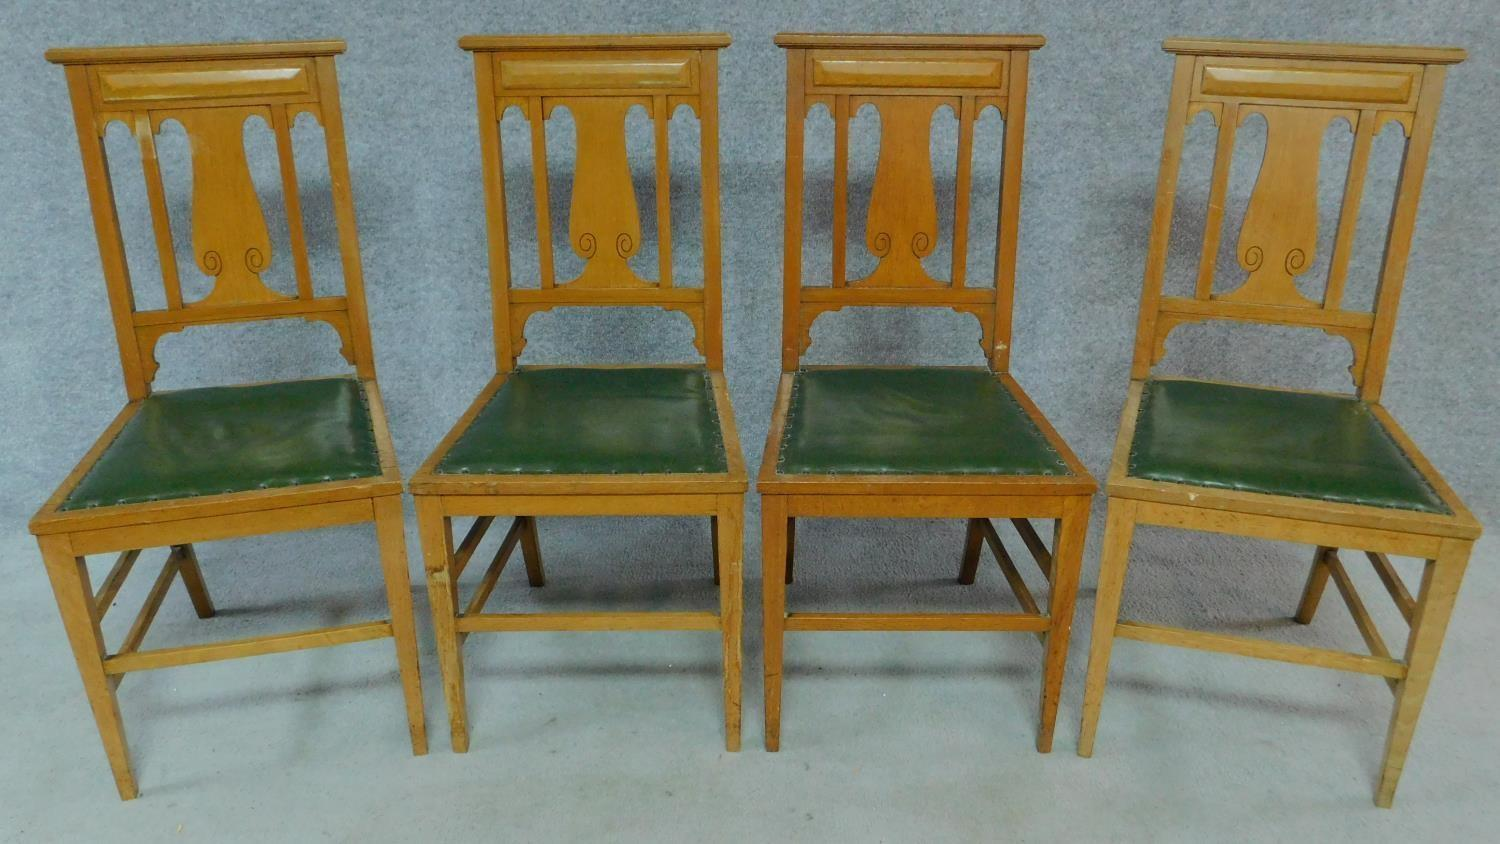 Lot 4 - A set of four Art Nouveau oak chairs with carved back and green leather upholstery raised on